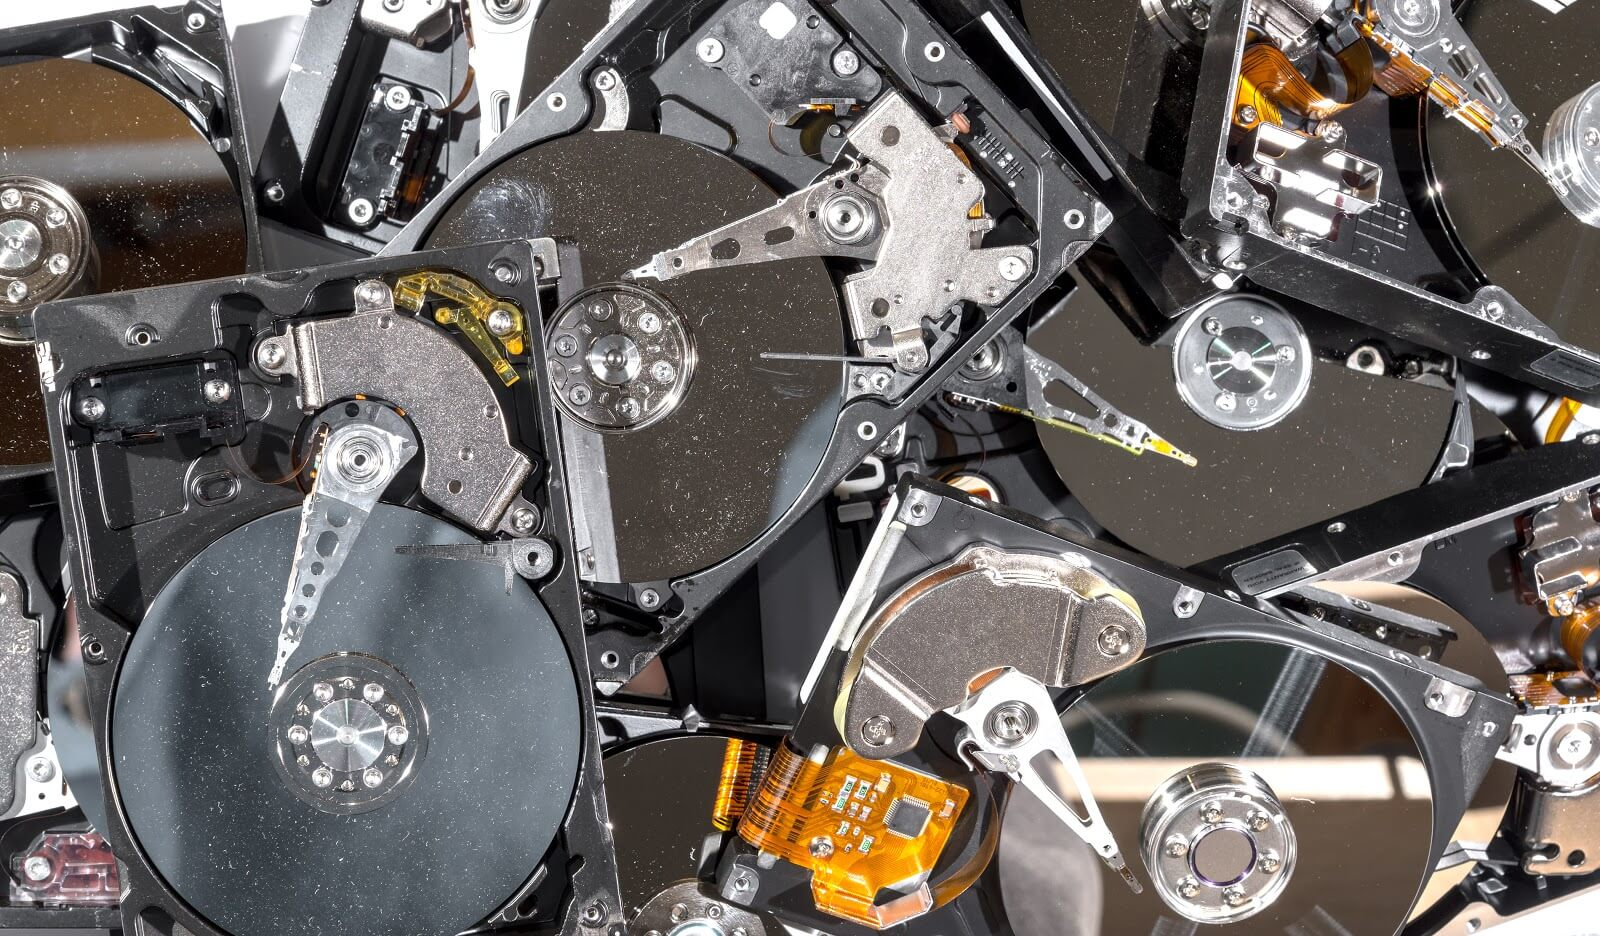 A pile of hard drives being recycle